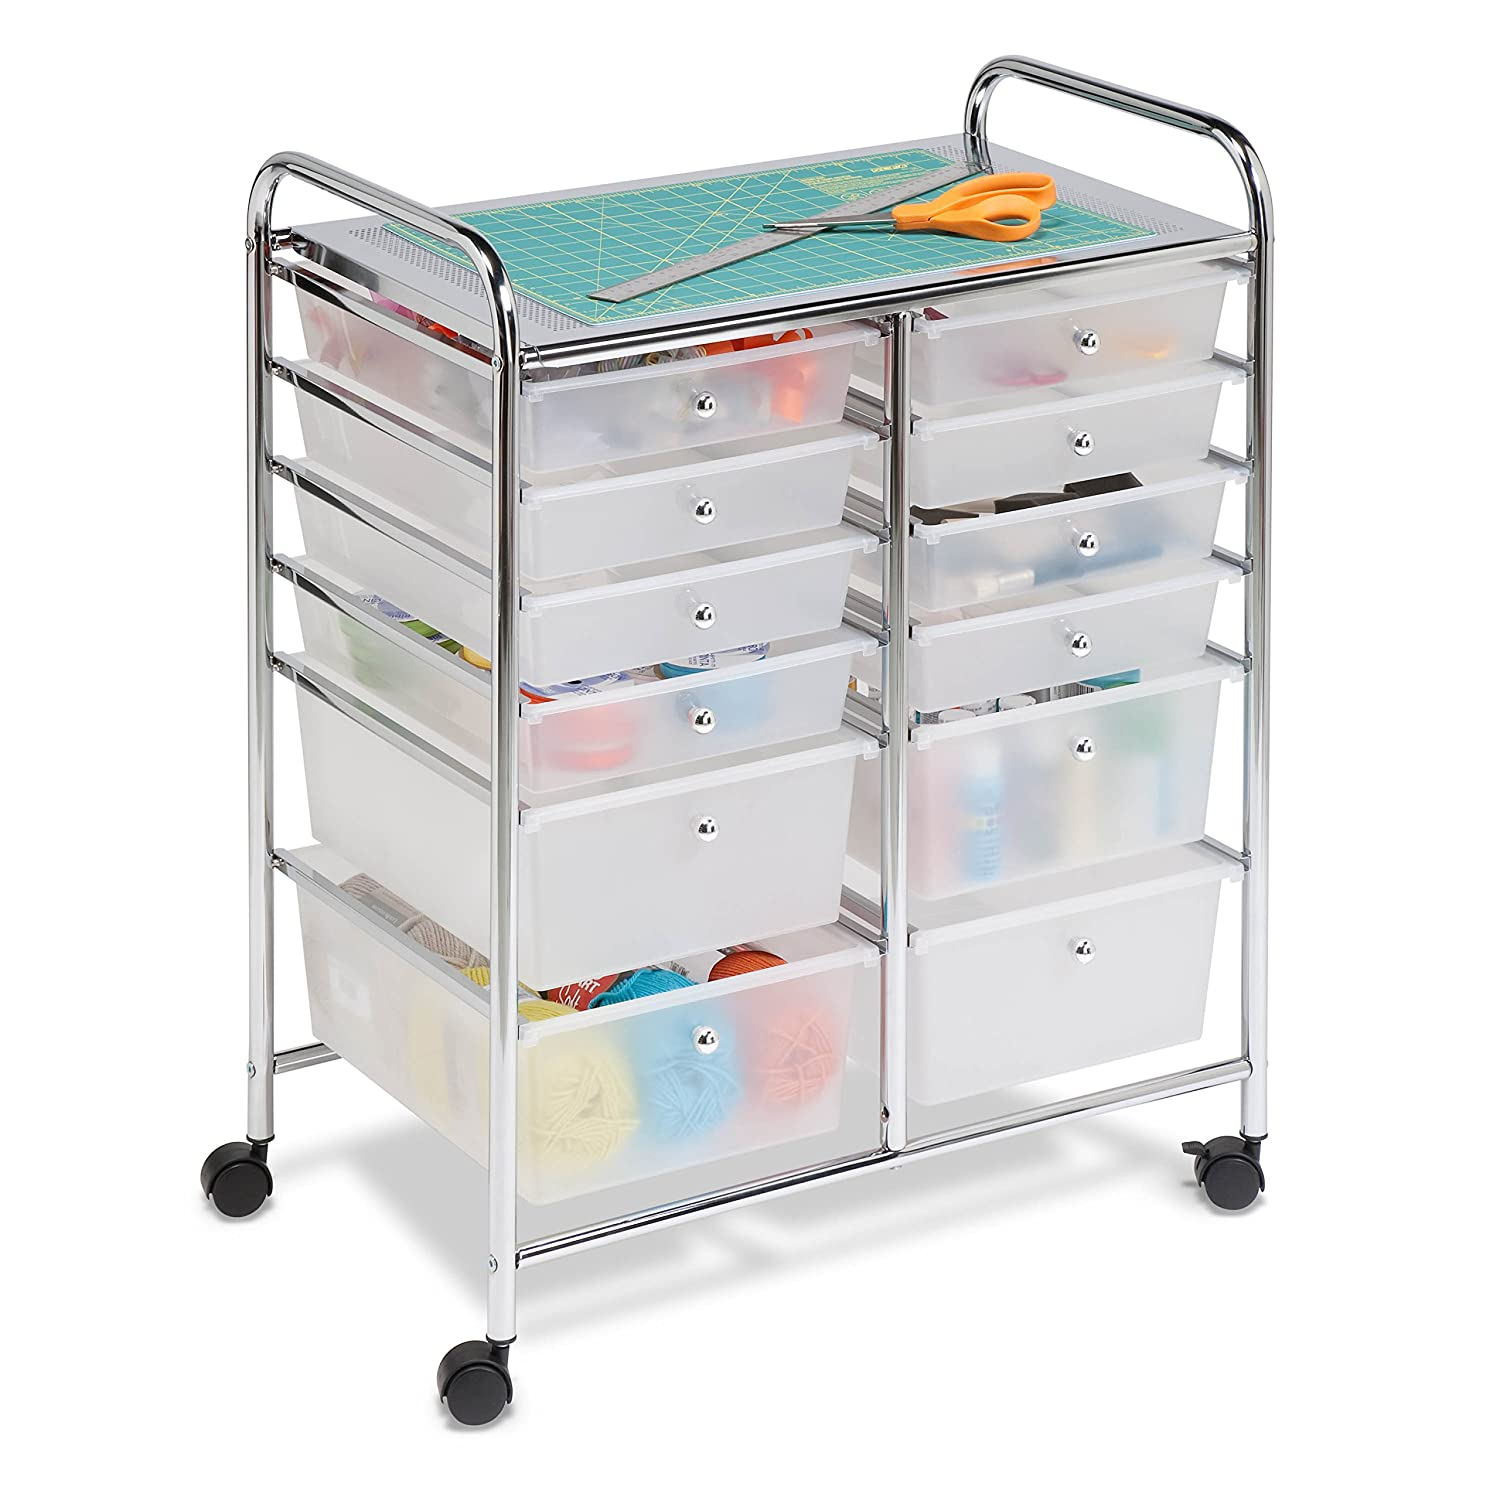 xl hefty navy latch stackable white plastic ip clear com walmart bin with storage qt drawers bins modular